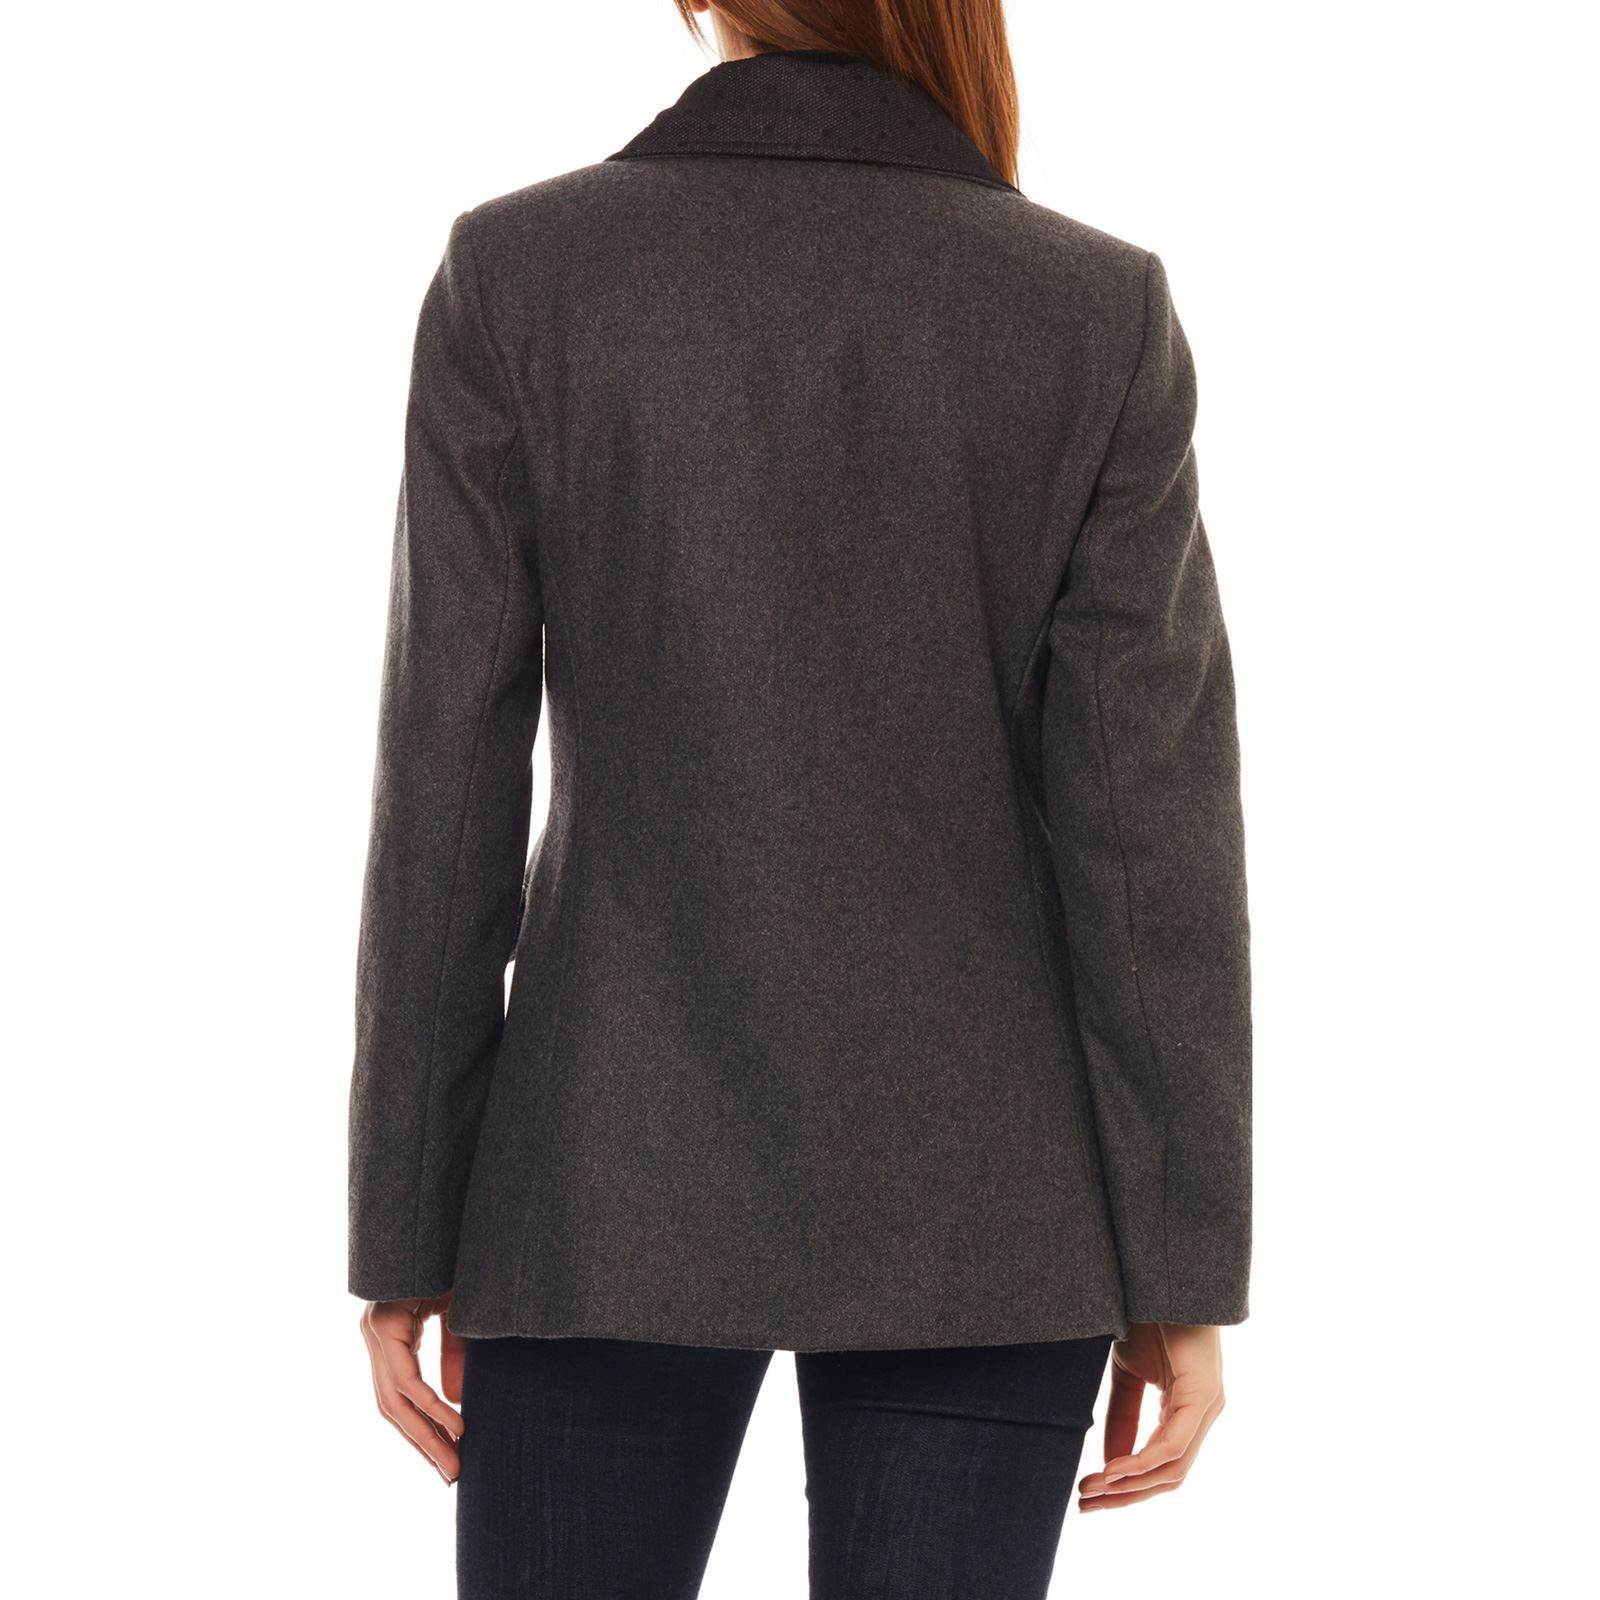 Brandalley Manteau 70 Laine Anthracite Naf Mary OPqxAA